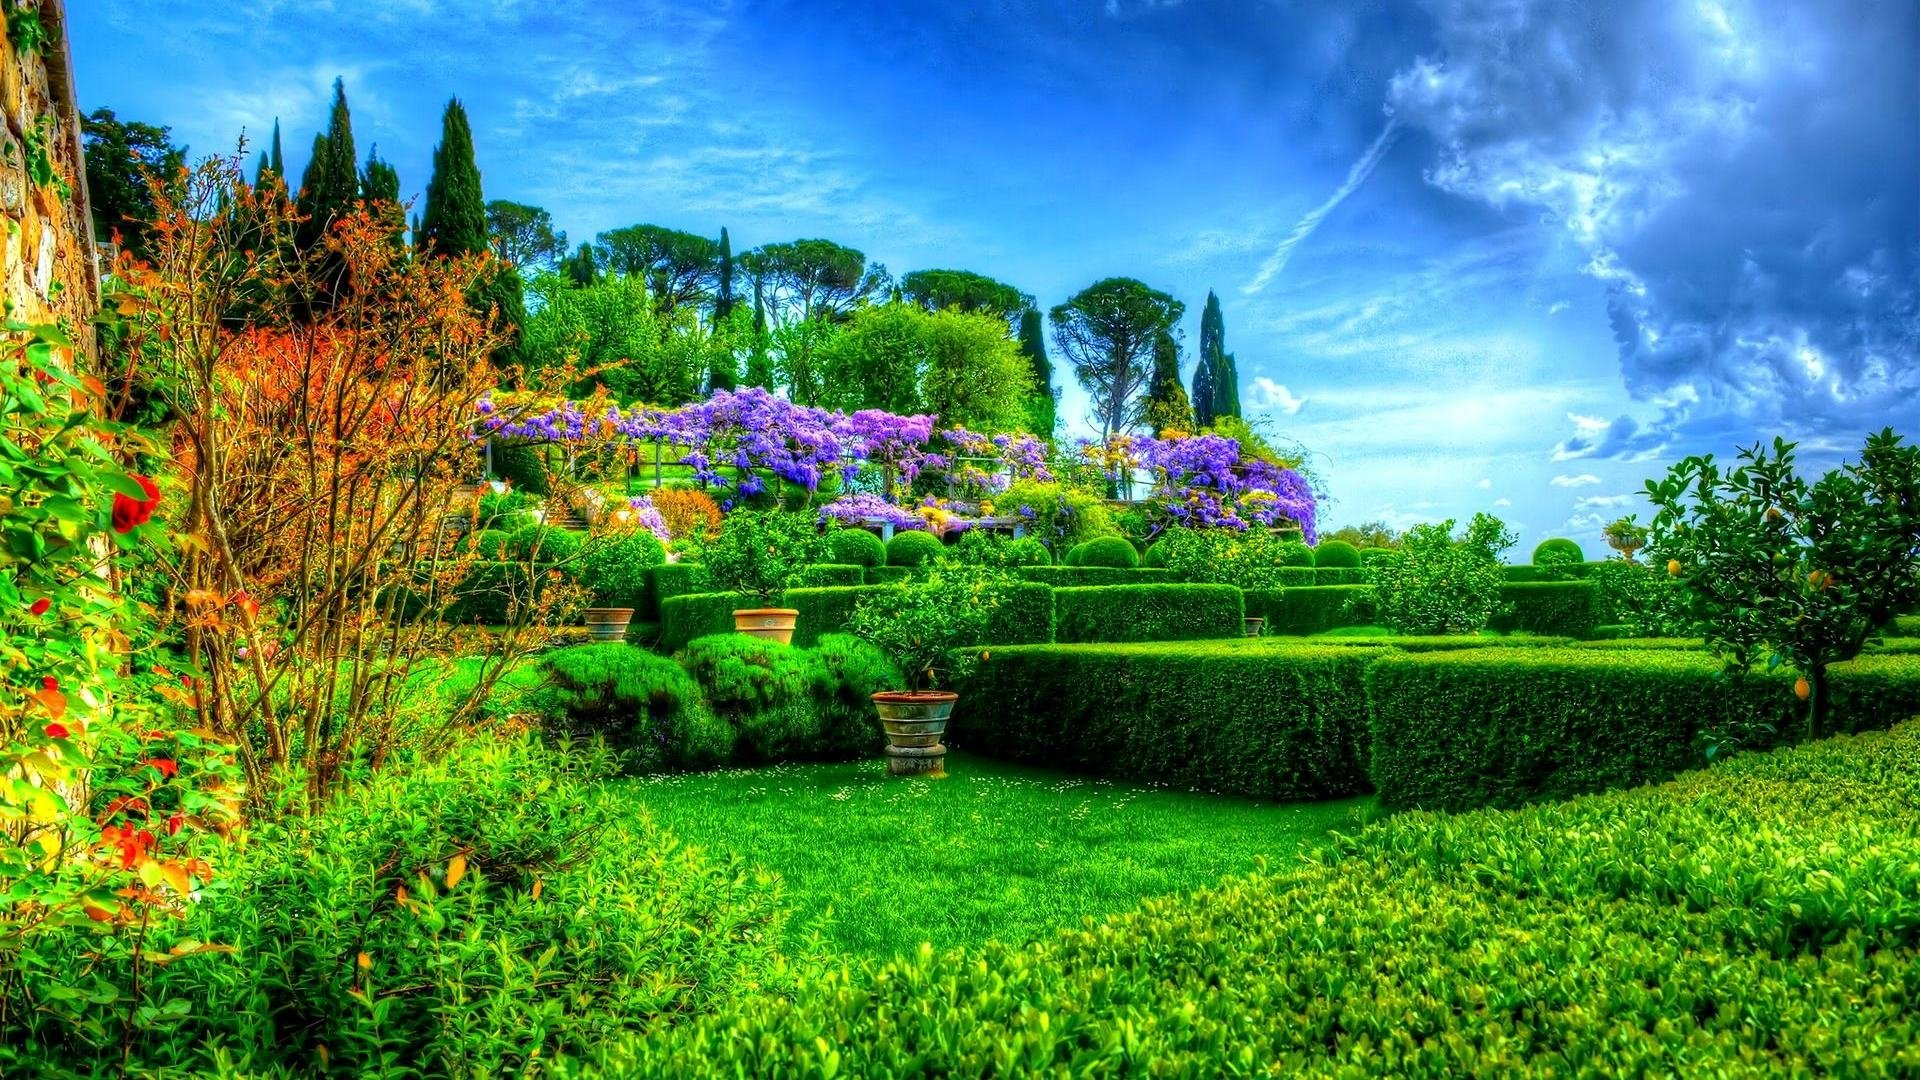 Earth - Spring  Garden Earth Park Green Tree Bush Grass HDR Wallpaper